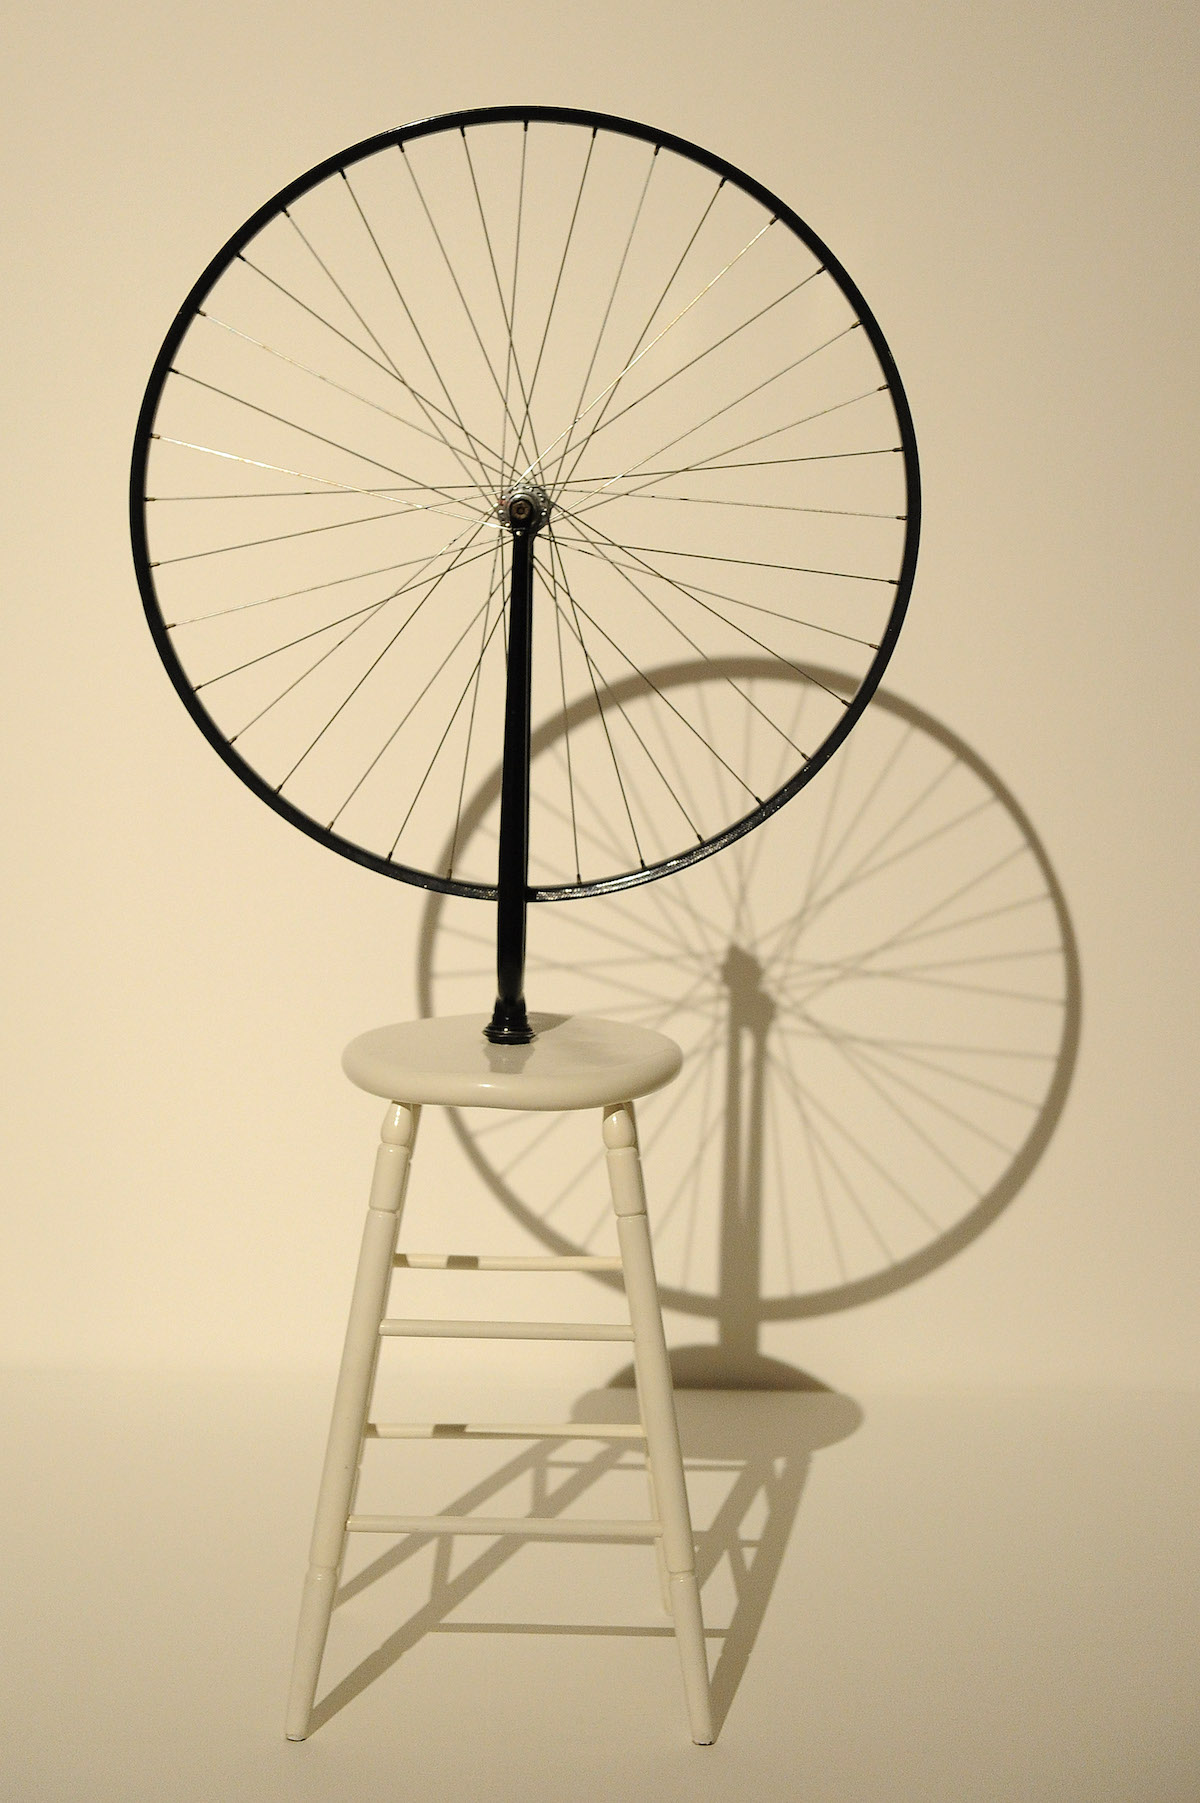 'Bicycle Wheel' by Marcel Duchamp 1964 (replica of 1913 original)'The Bride and the Bachelors' Duchamp with Cage,Cunningham, Rauschenberg and Johns, exhibition and dance programme, Barbican Gallery, London, Britain - 13 Feb 2013